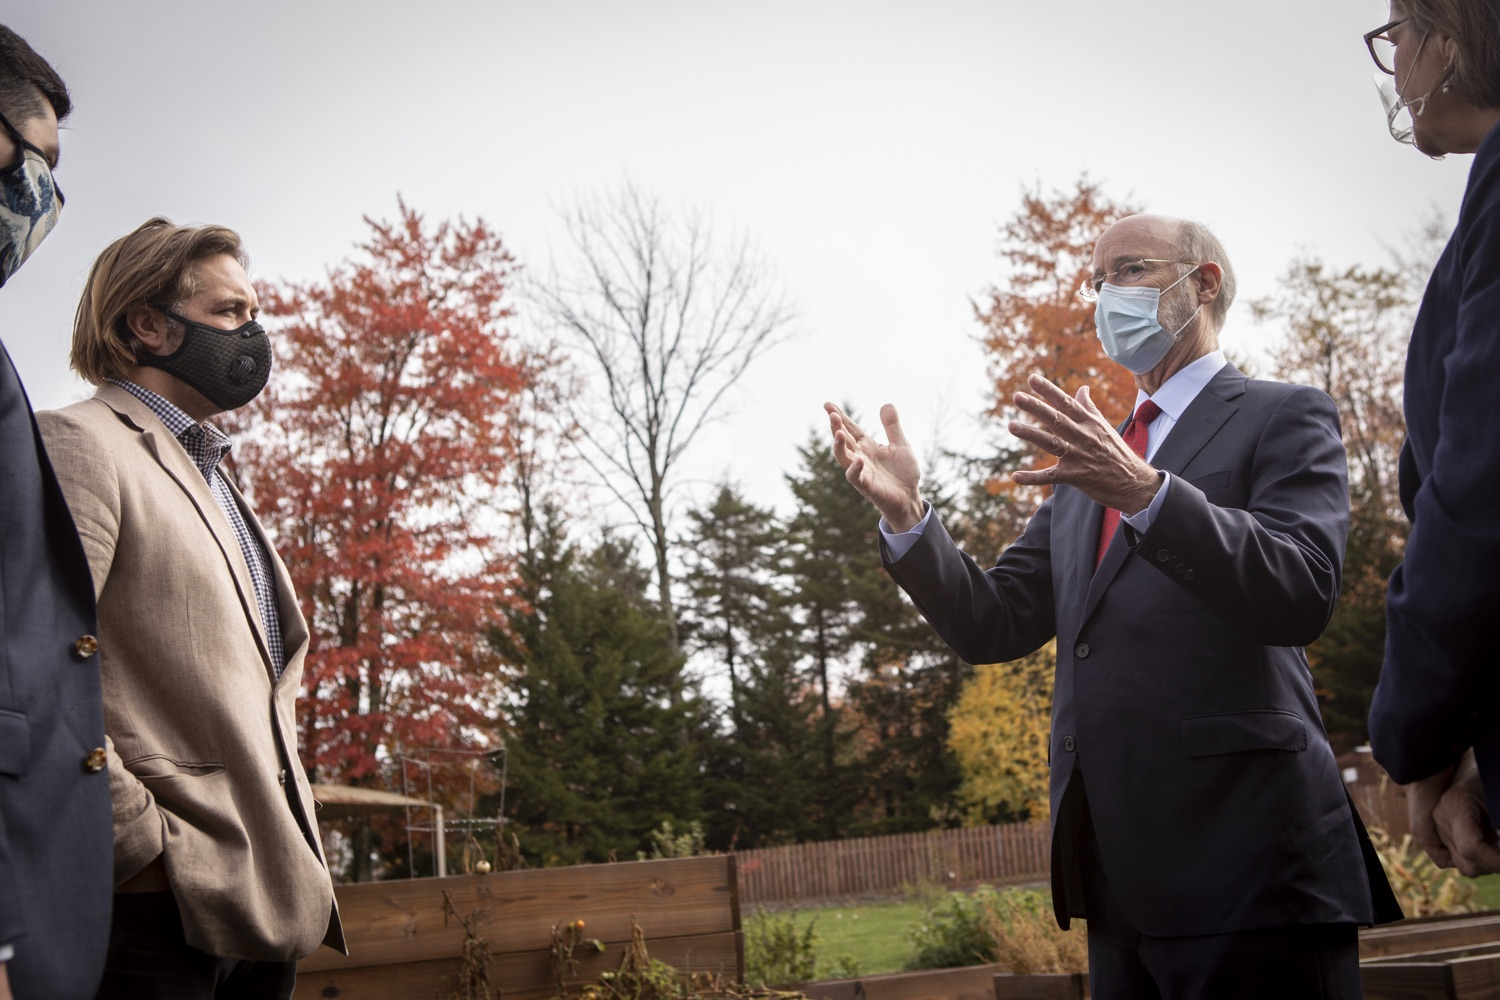 """<a href=""""https://filesource.wostreaming.net/commonwealthofpa/photo/18310_gov_adult_use_cannabis_dz_012.jpg"""" target=""""_blank"""">⇣Download Photo<br></a>Governor Tom Wolf touring The Mountain Center with Rep. Maureen Madden and Eric Titus White. Governor Tom Wolf visited The Mountain Center in Tobyhanna, Monroe County today to talk about the economic growth potential and restorative justice benefits of legalizing adult-use cannabis, something the state General Assembly has not yet done despite multiple requests from the governor and Lieutenant Governor John Fetterman to take up legislation this fall.  Tobyhanna, PA  October 13, 2020"""